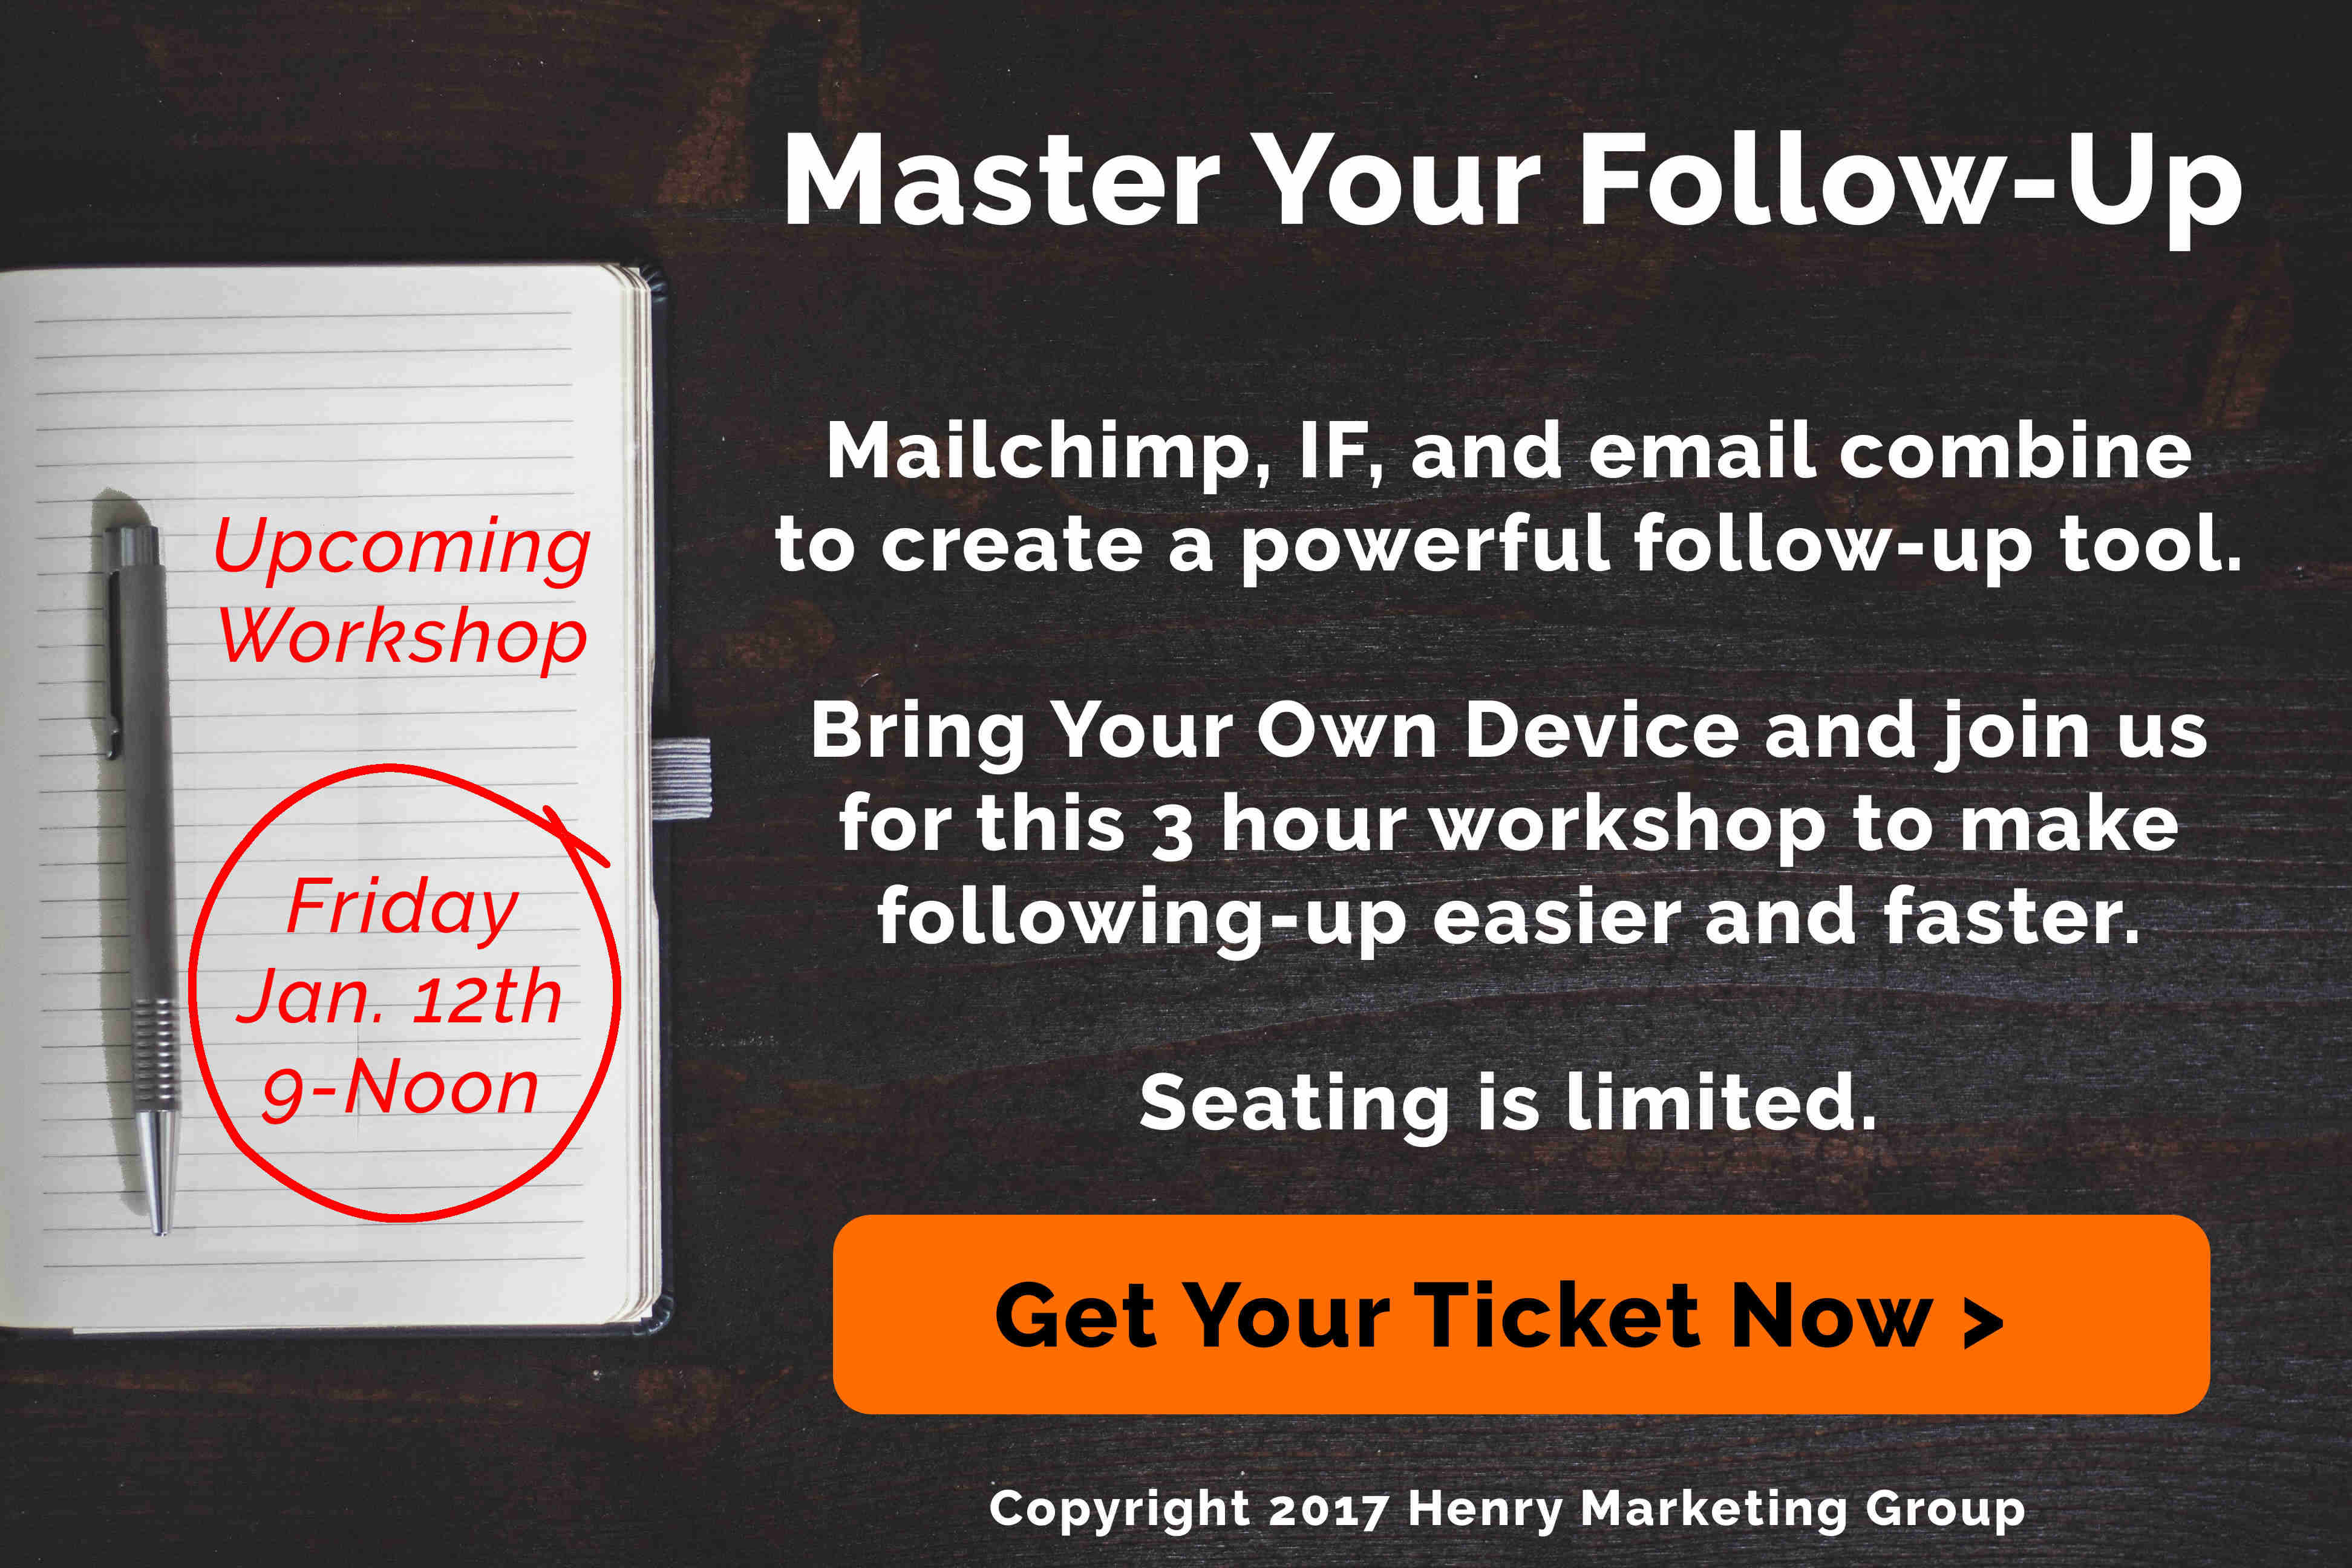 Master Your Follow-Up: Upcoming Workshop: Friday, January, 12th from 9am to noon: Mailchimp, IF, and email combine to create a powerful follow-up tool. Bring Your Own Device and join us for this 3 hour workshop to make following-up easier and faster. Seating is limited.